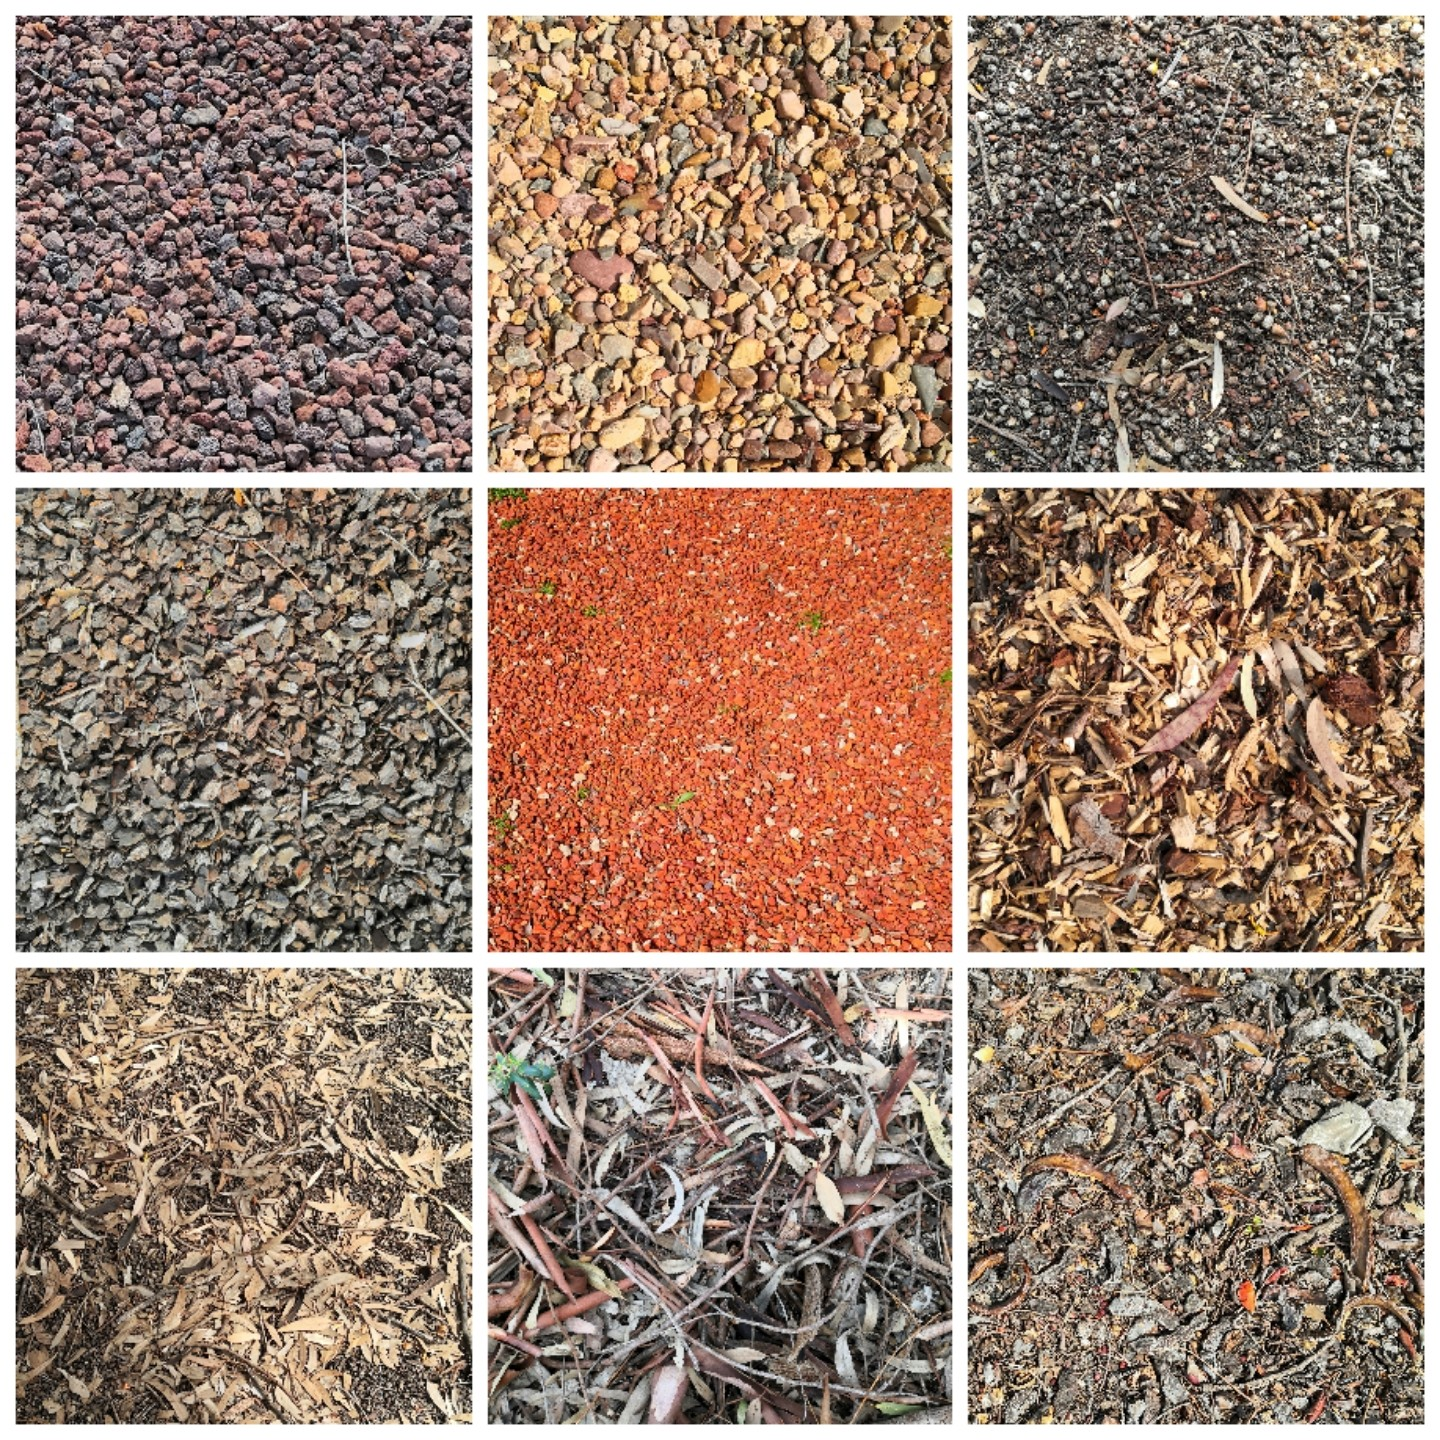 Some types of mulch used by landscapers.